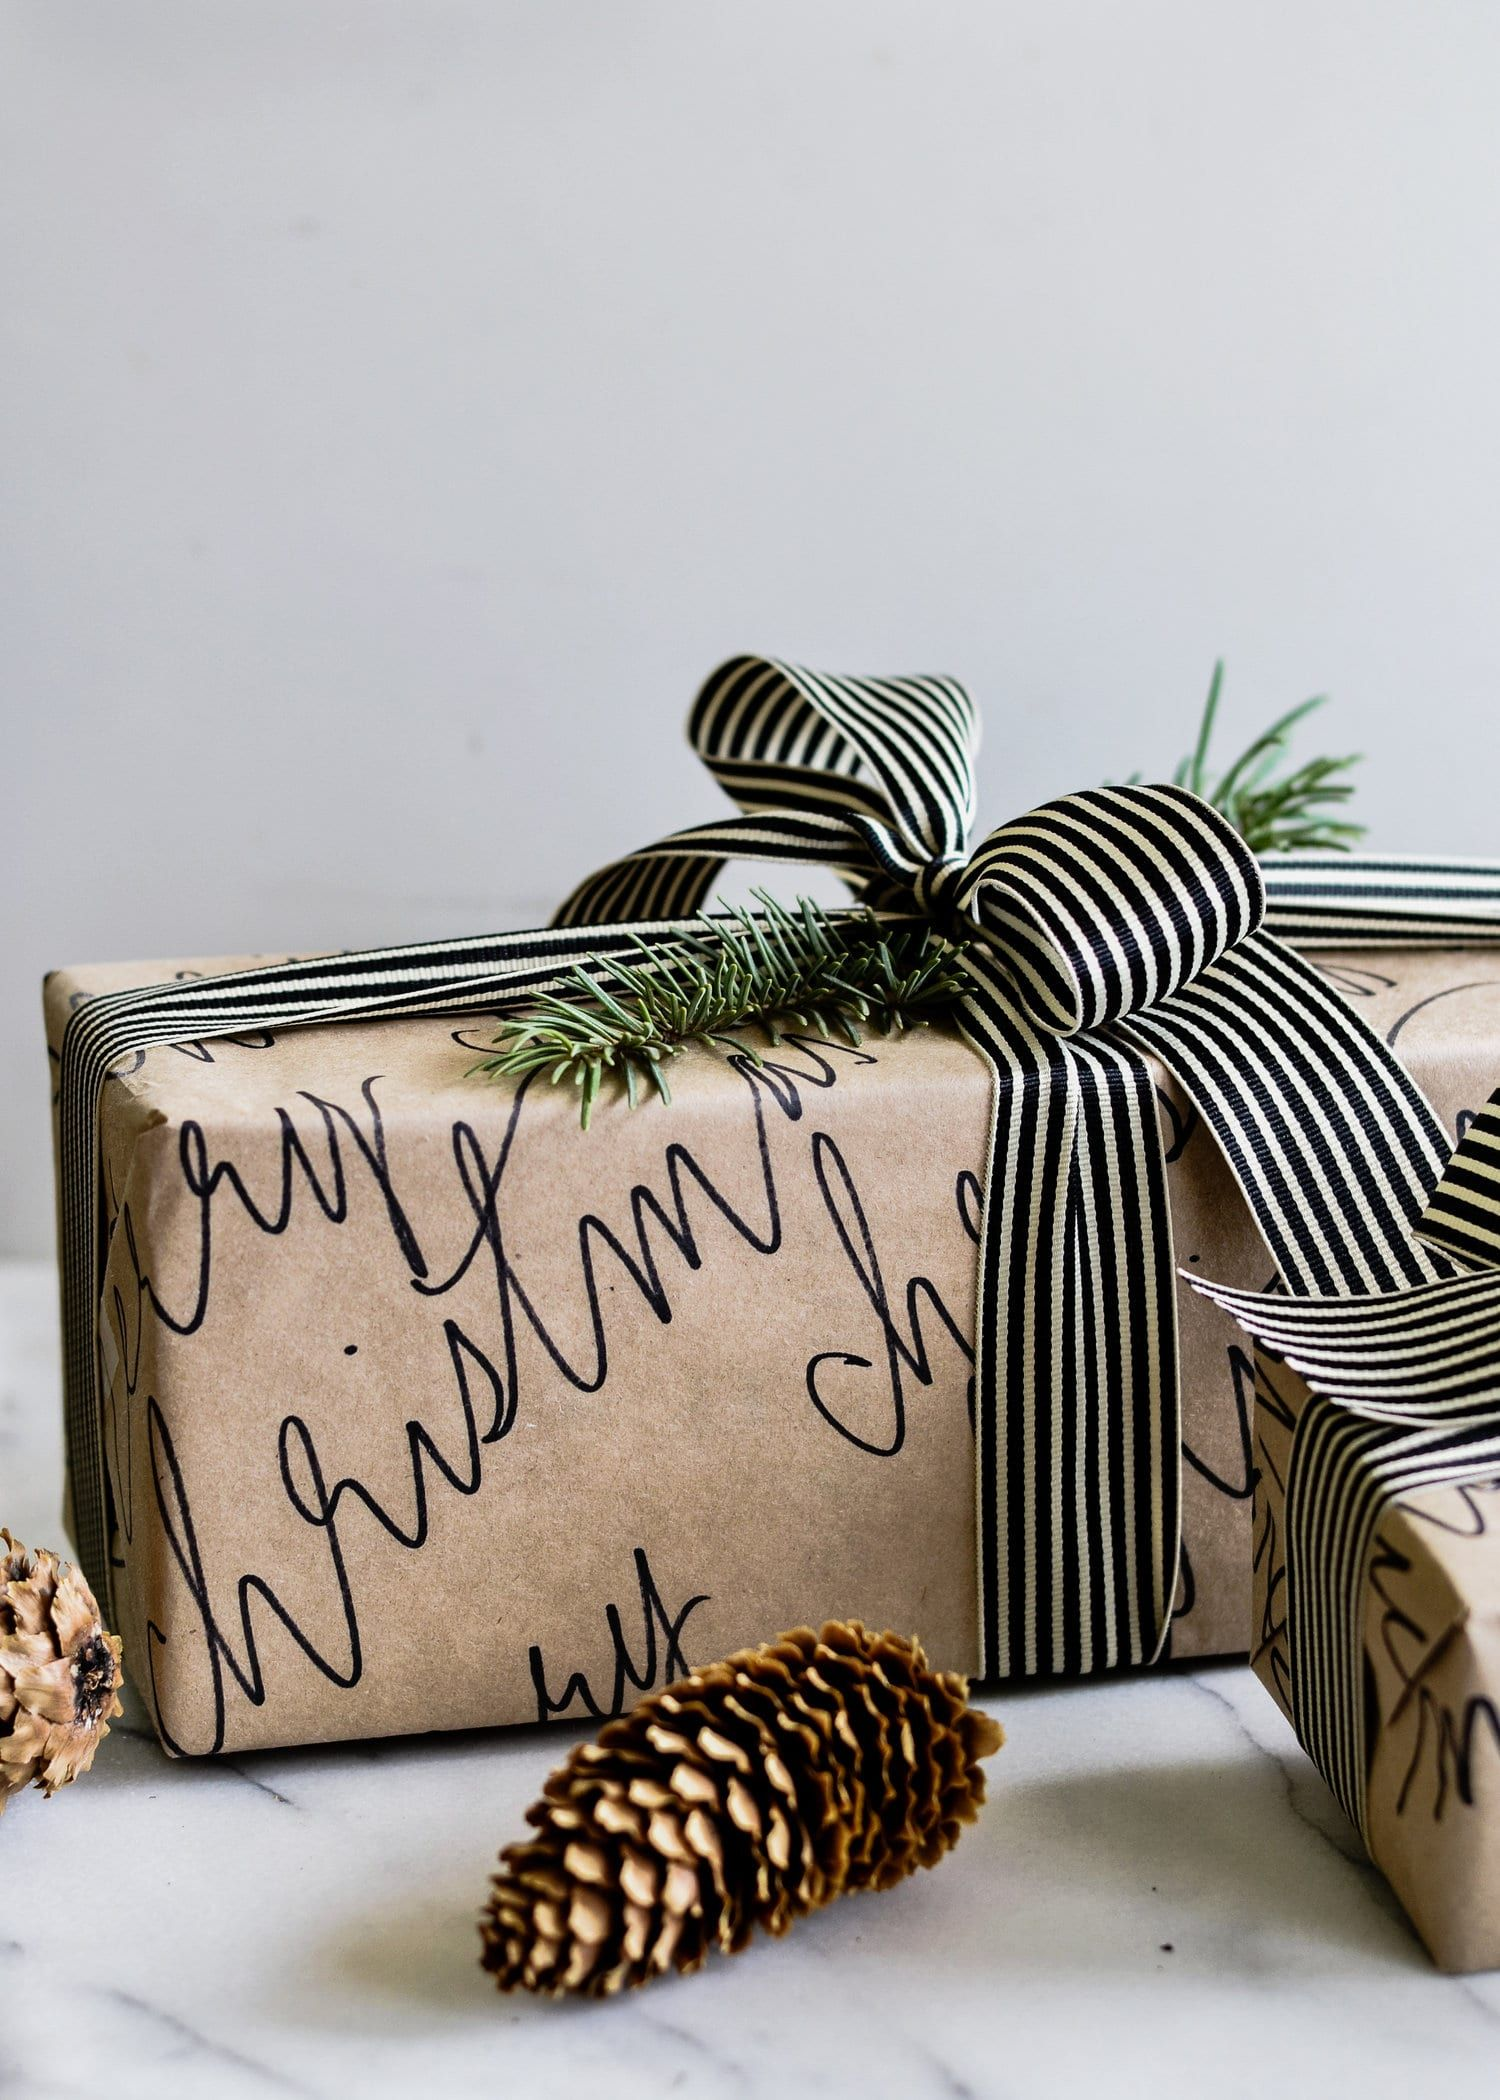 10 Cozy Christmas Gift Wrapping Ideas  Visit for Christmas party ideas Christmas cocktails Christmas recipes and more from entertaining blog cydconverse